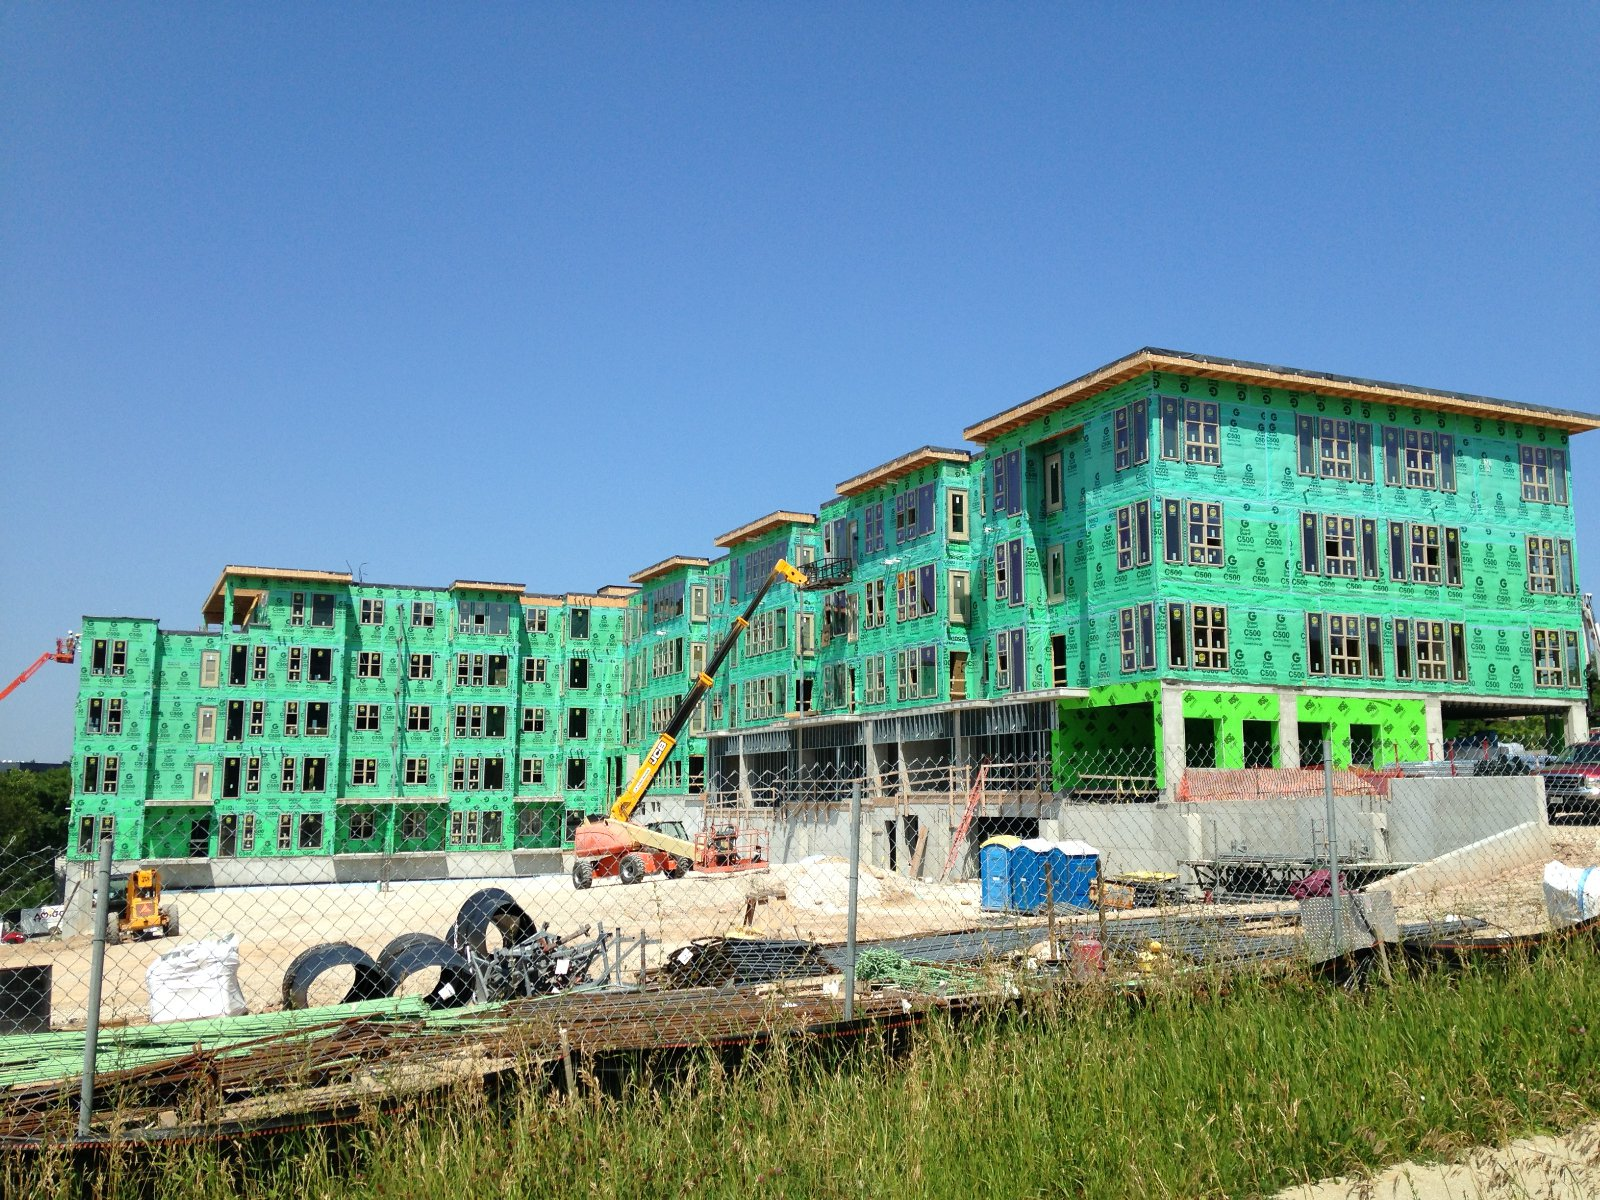 The Avenir is under construction in the Park East.